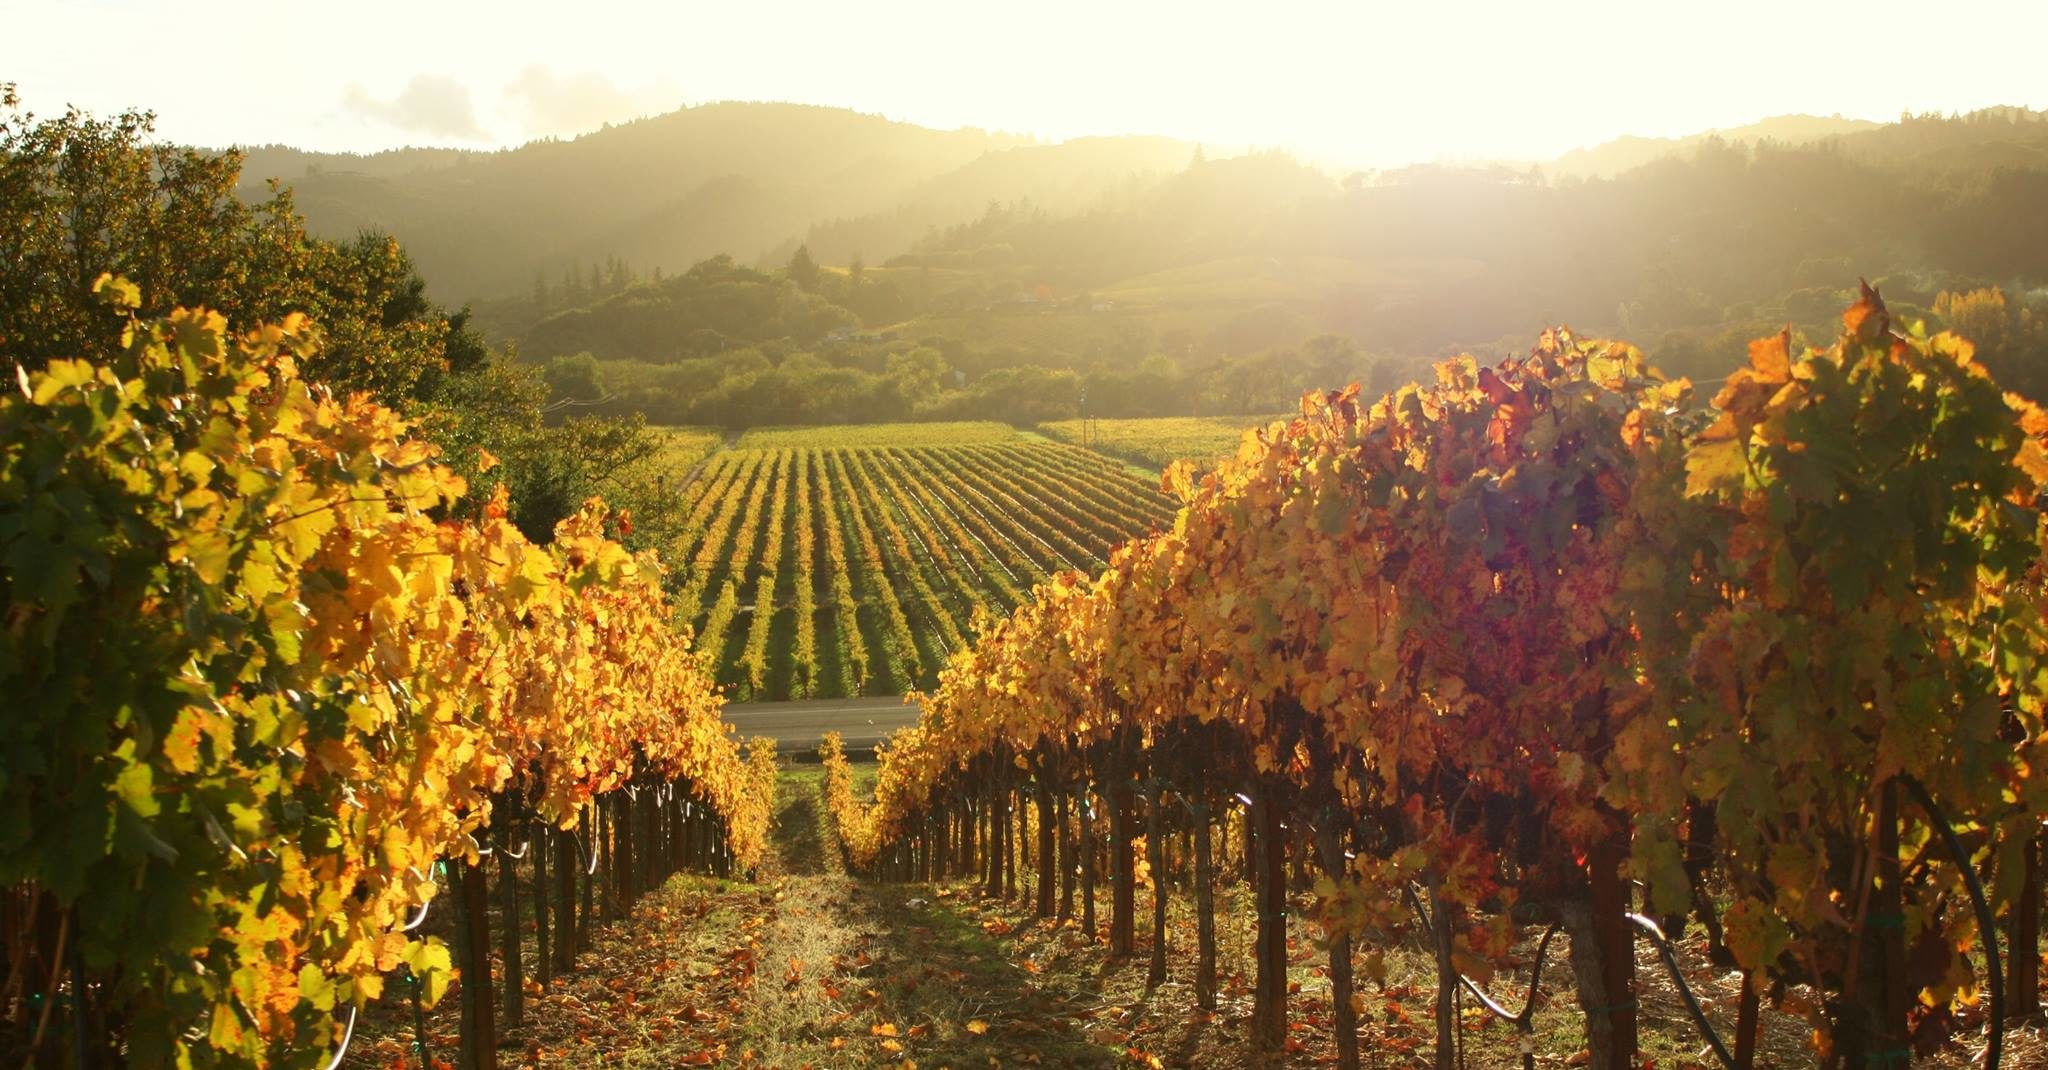 Vineyard Homes for Sale in Sonoma CA by Latife Hayson